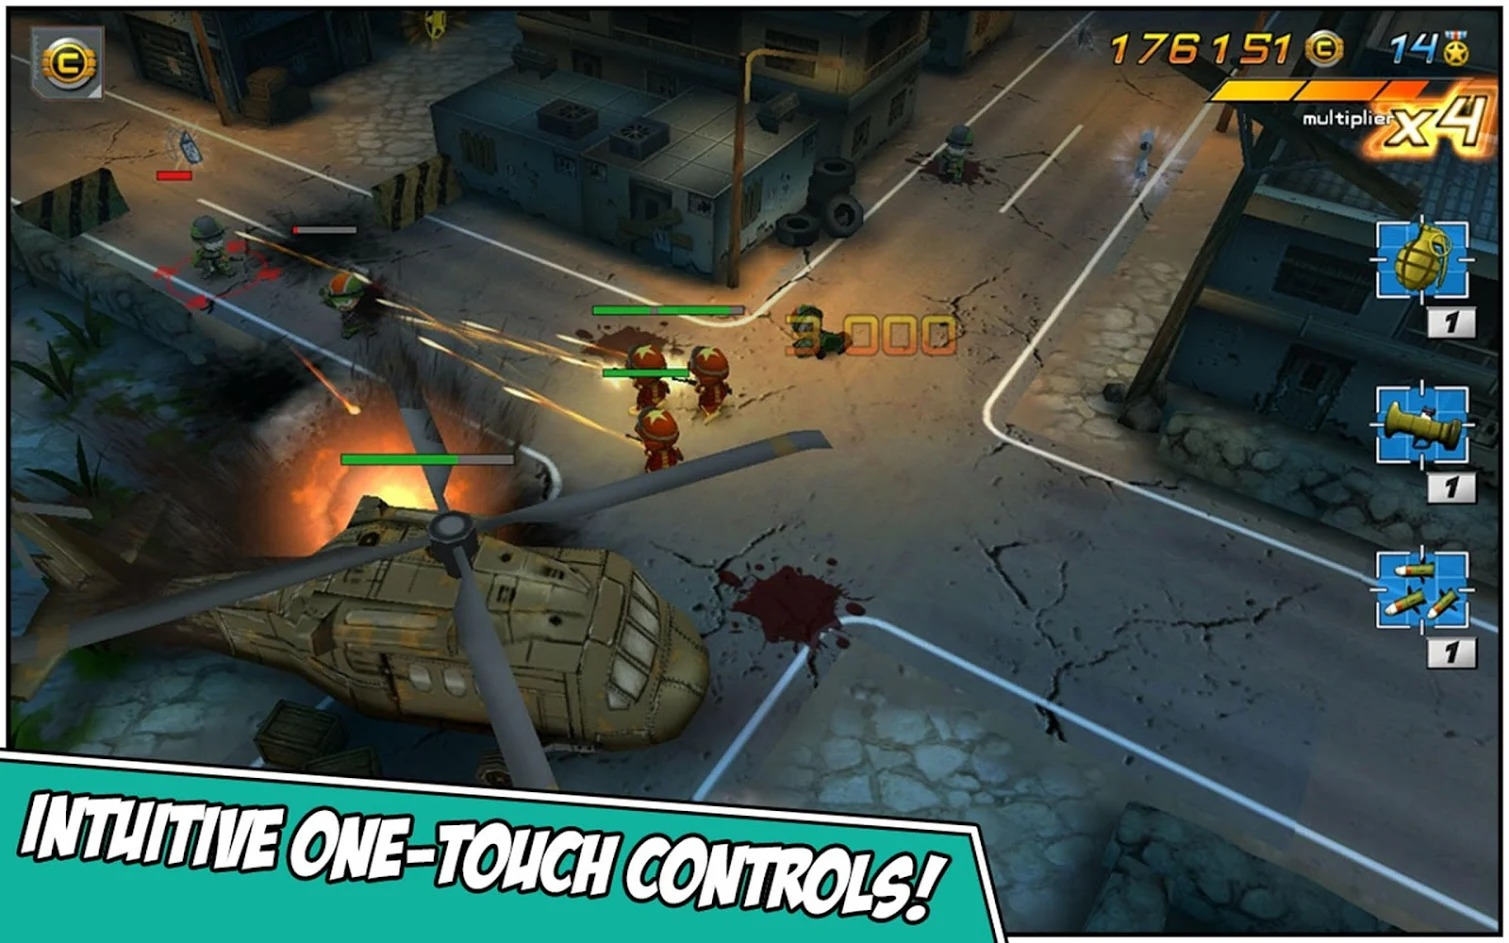 Download Tiny Troopers 2: Special Ops MOD APK v1 4 8 (Money